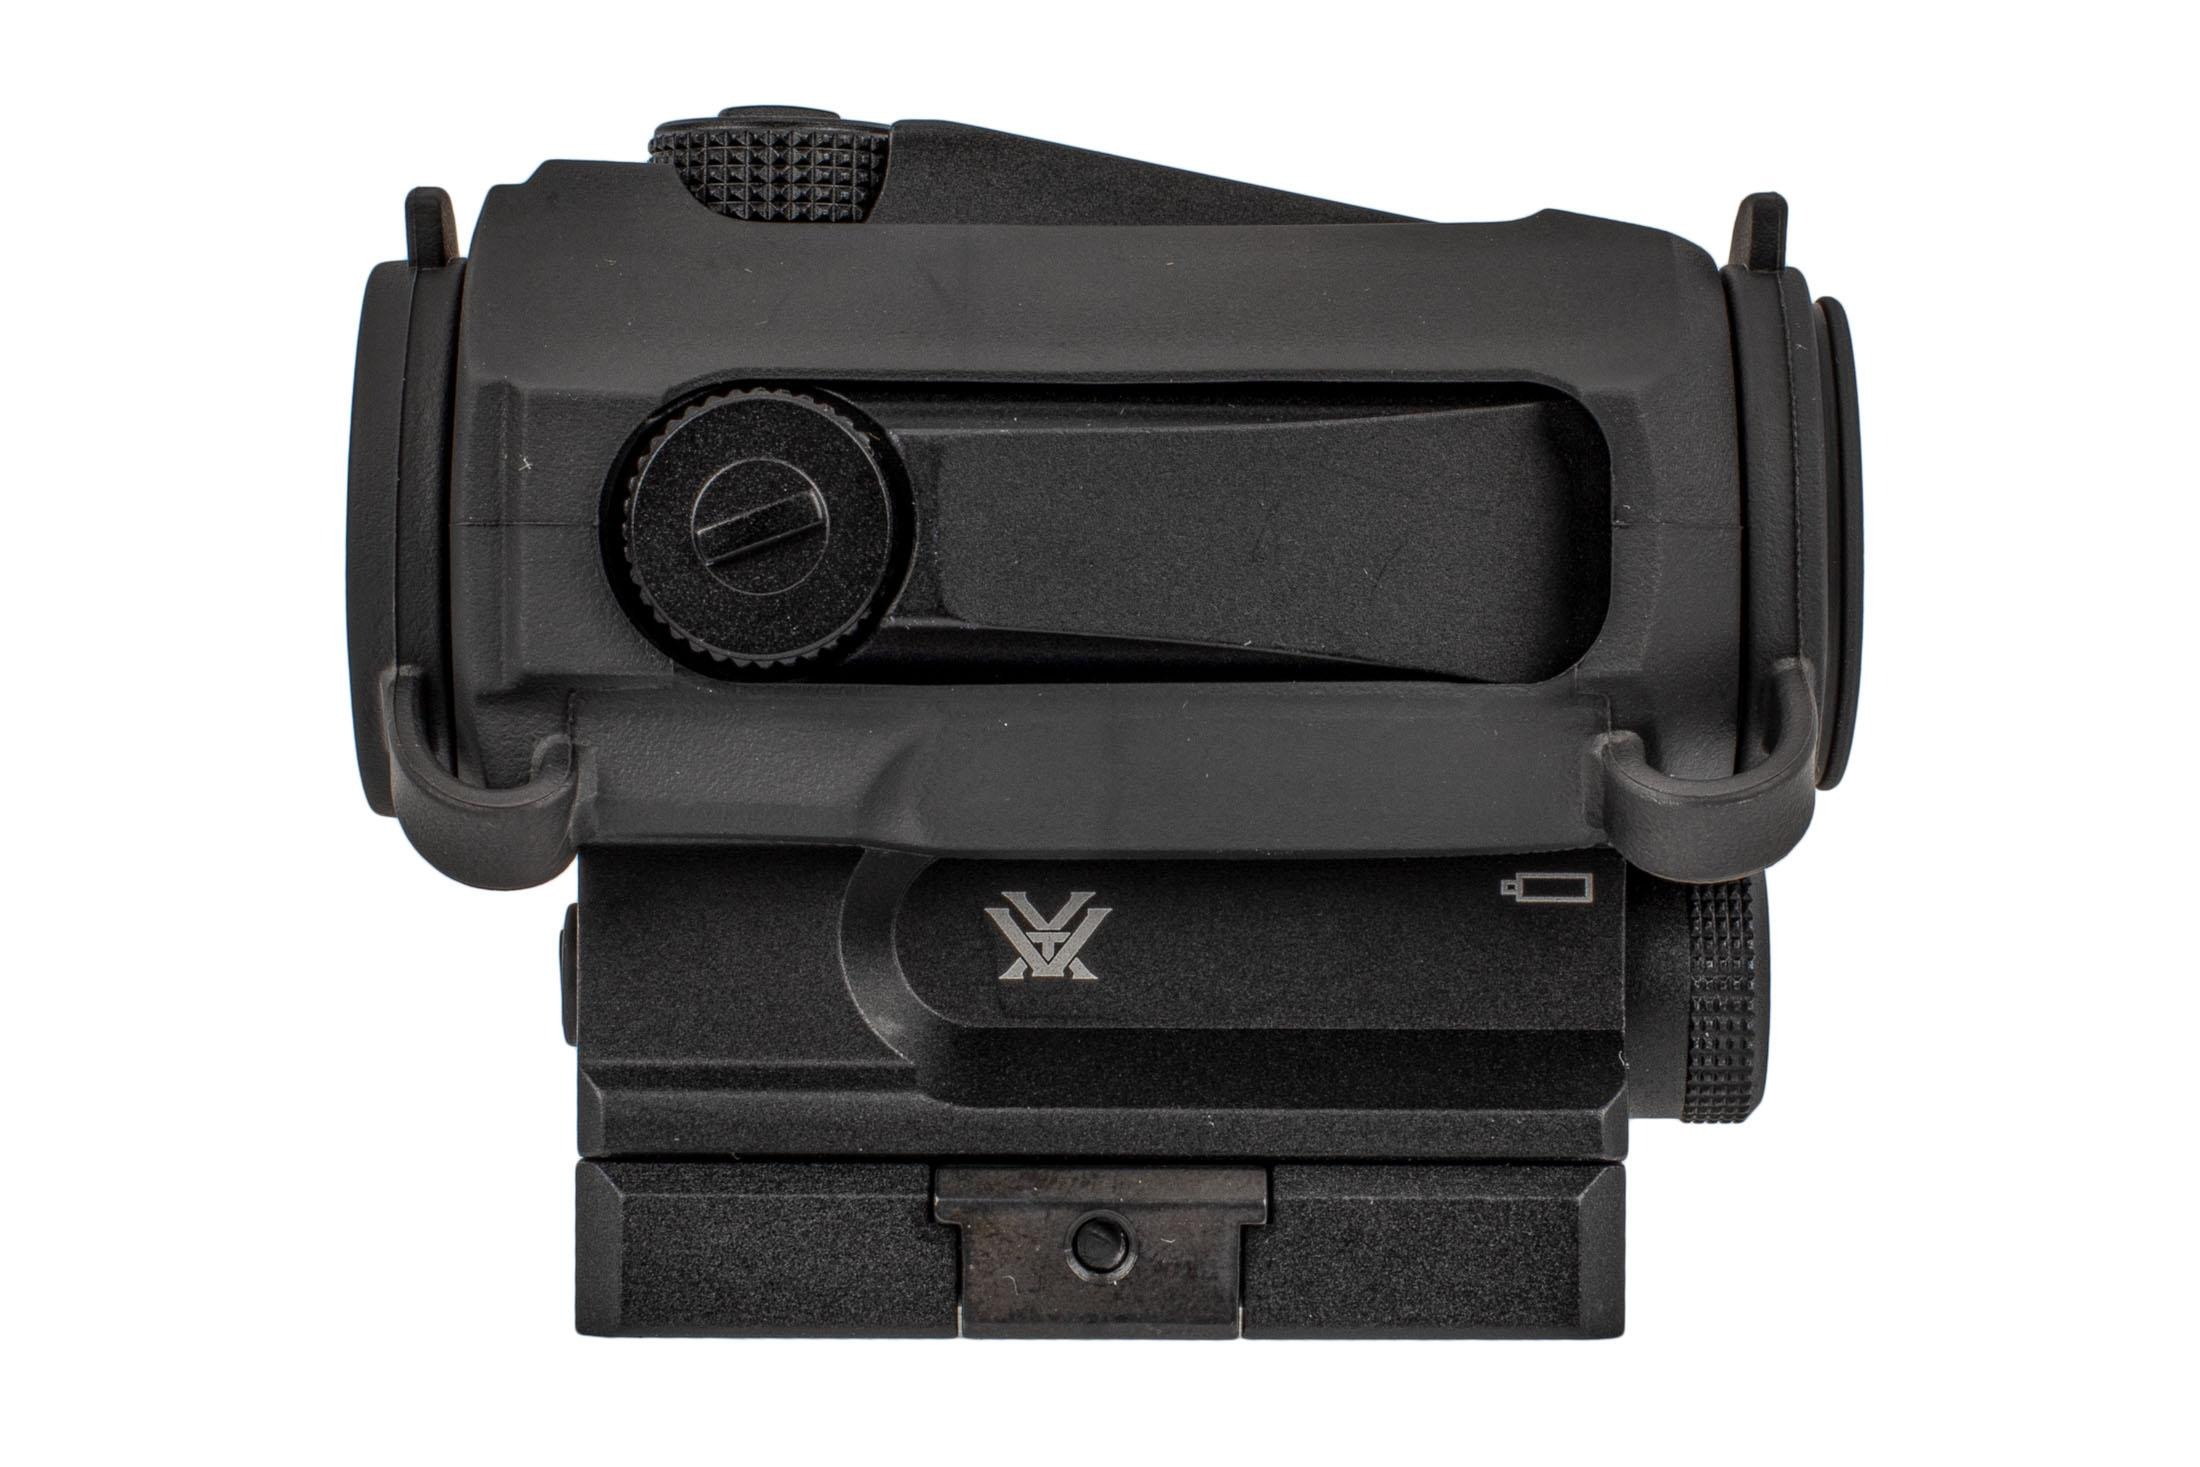 Vortex Optics SPARC AR 2 red dot sight runs on standard AAA batteries